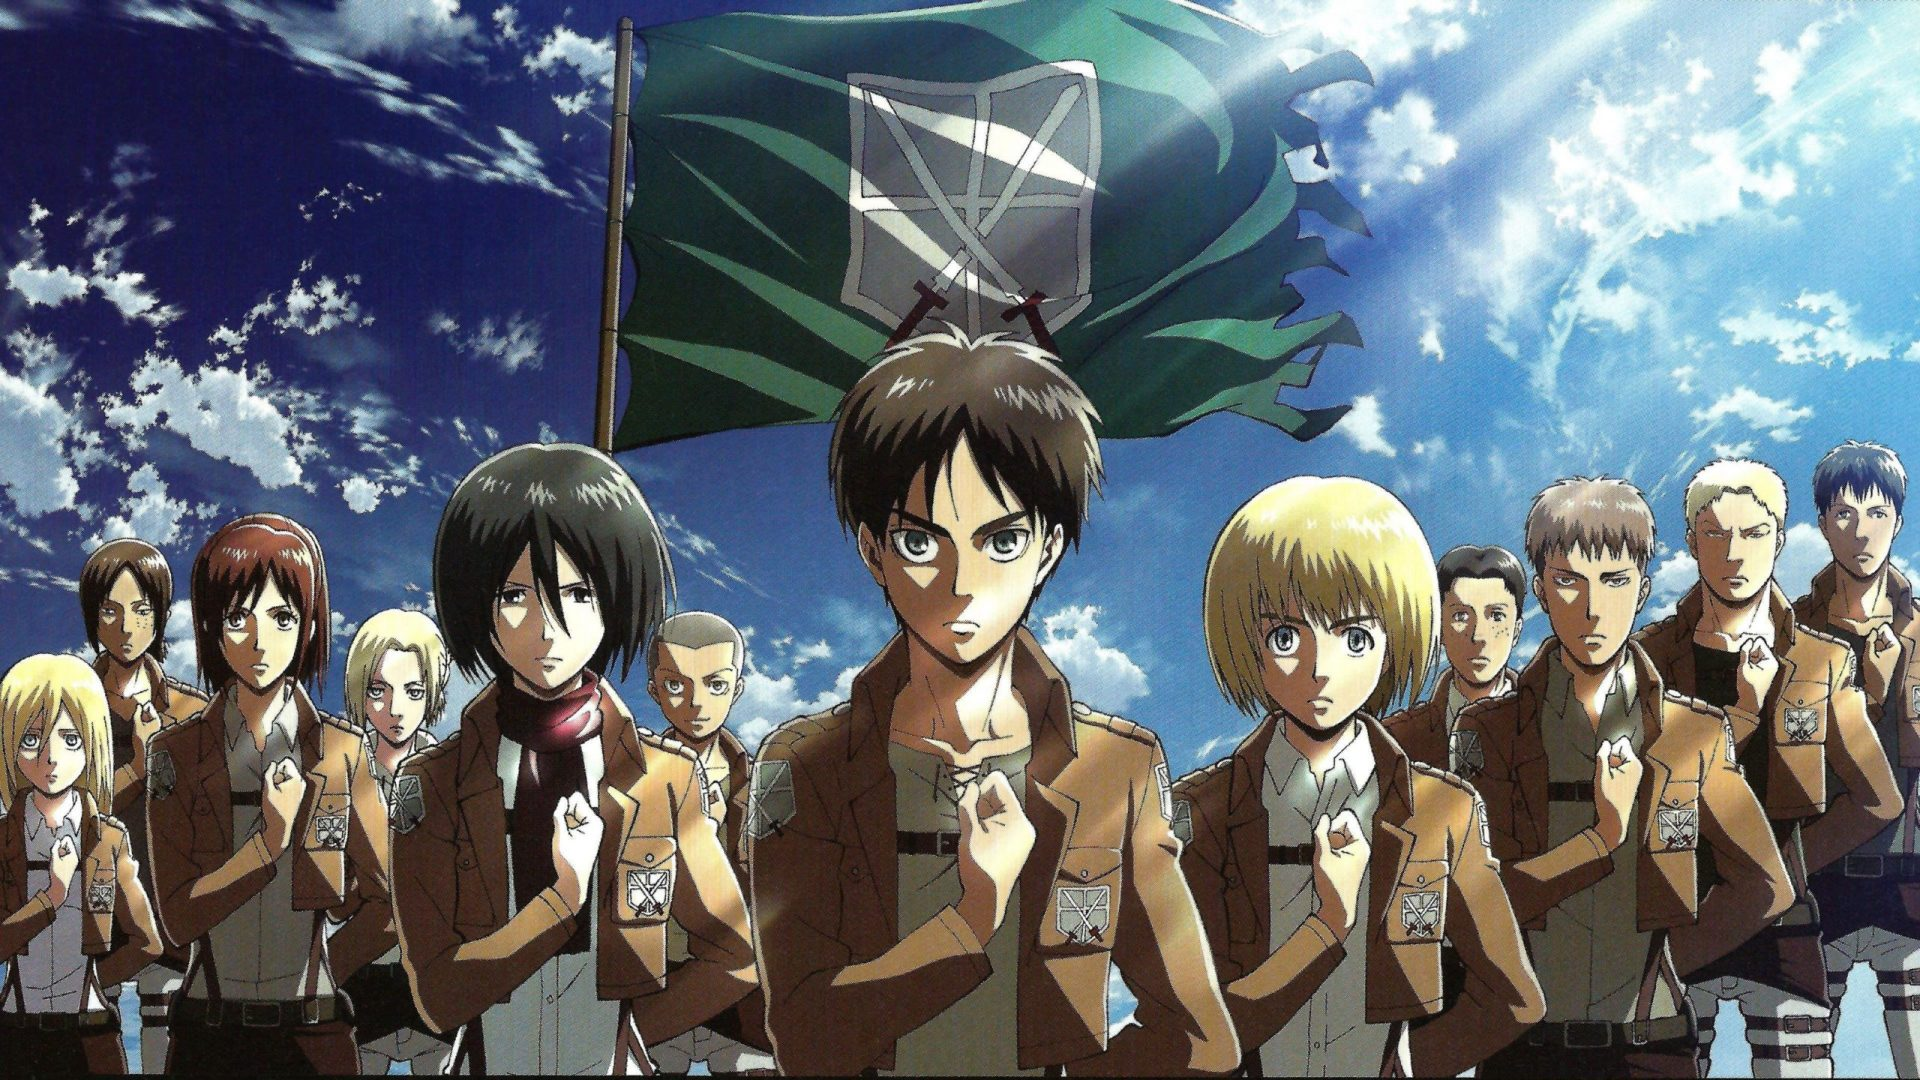 8th Episode Of Attack Of Titan- Find Out The Release Date!